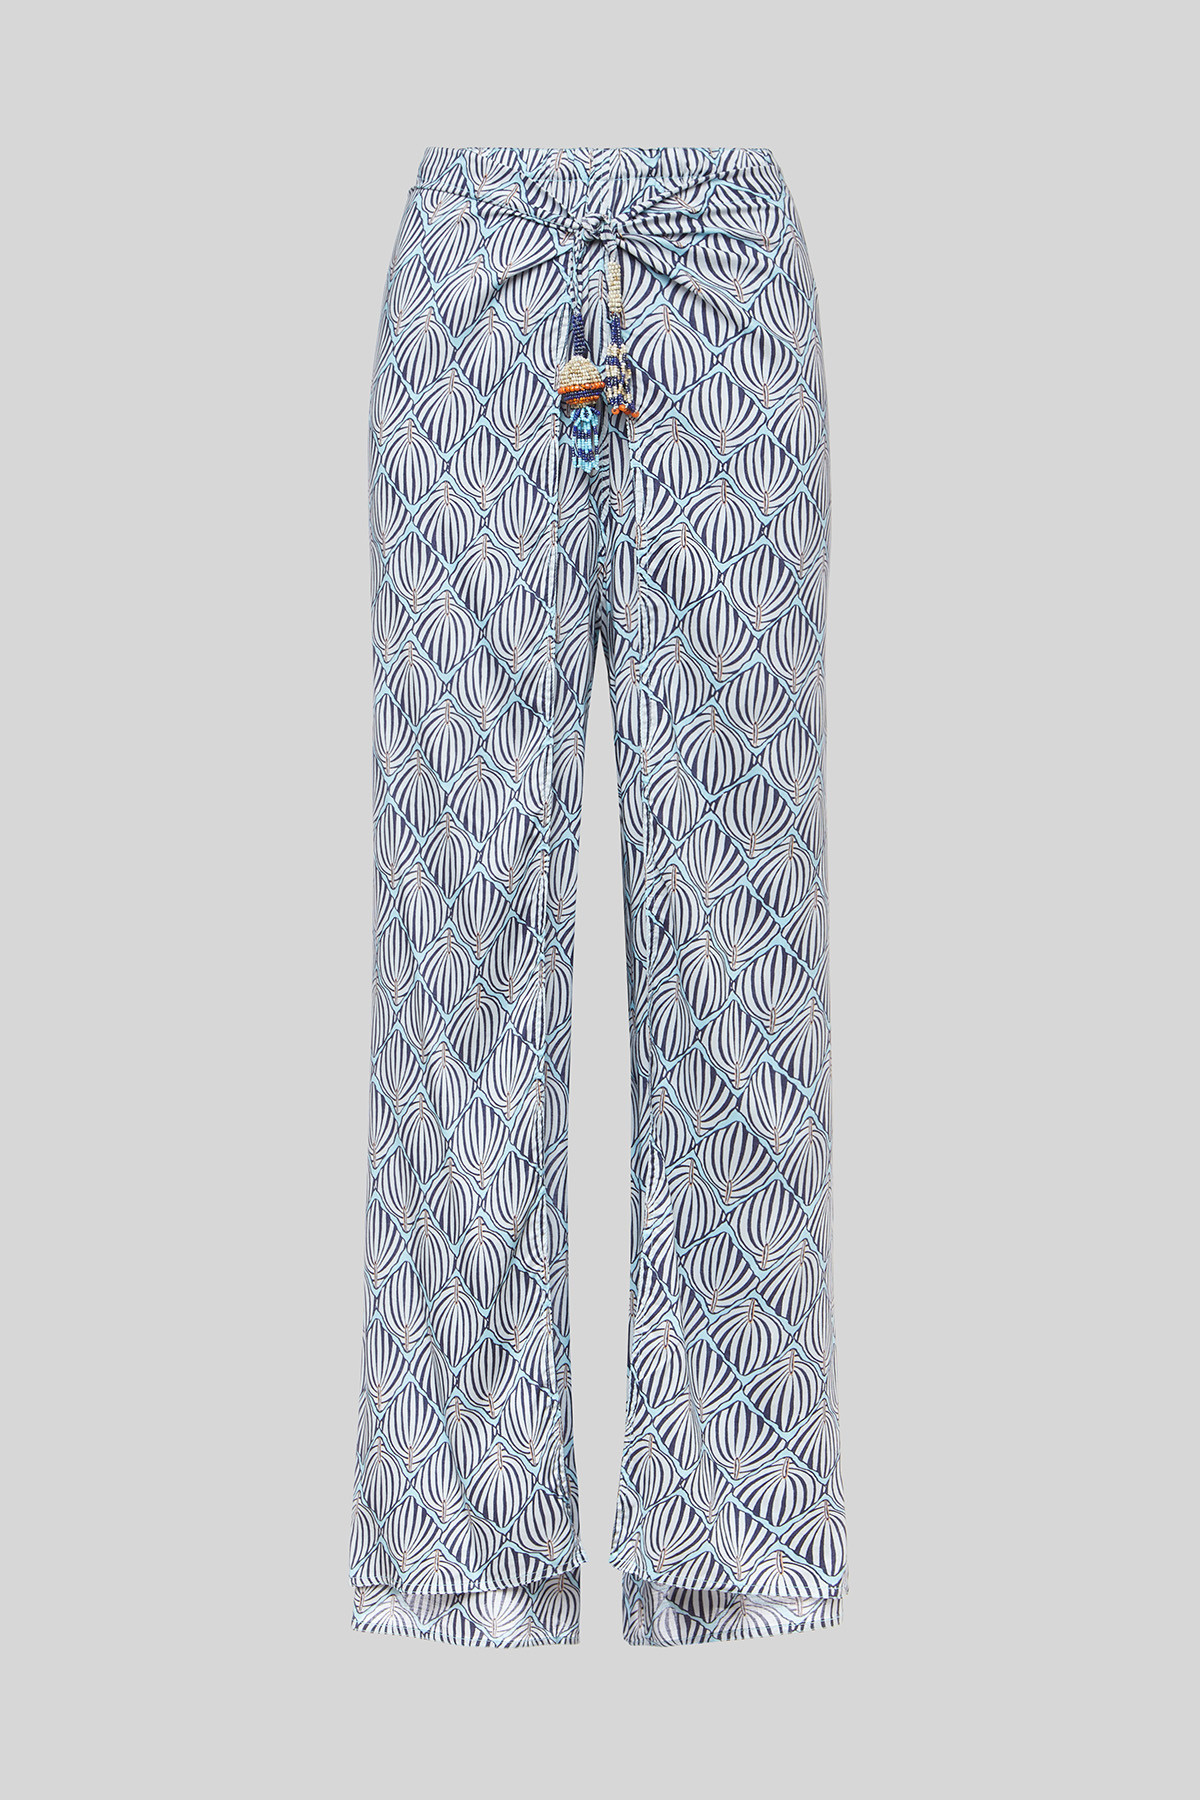 Women's Clothing Welcome Summer Pants in Blue Fantasy Maliparmi   Skirts and Pants   JH737770407A8146